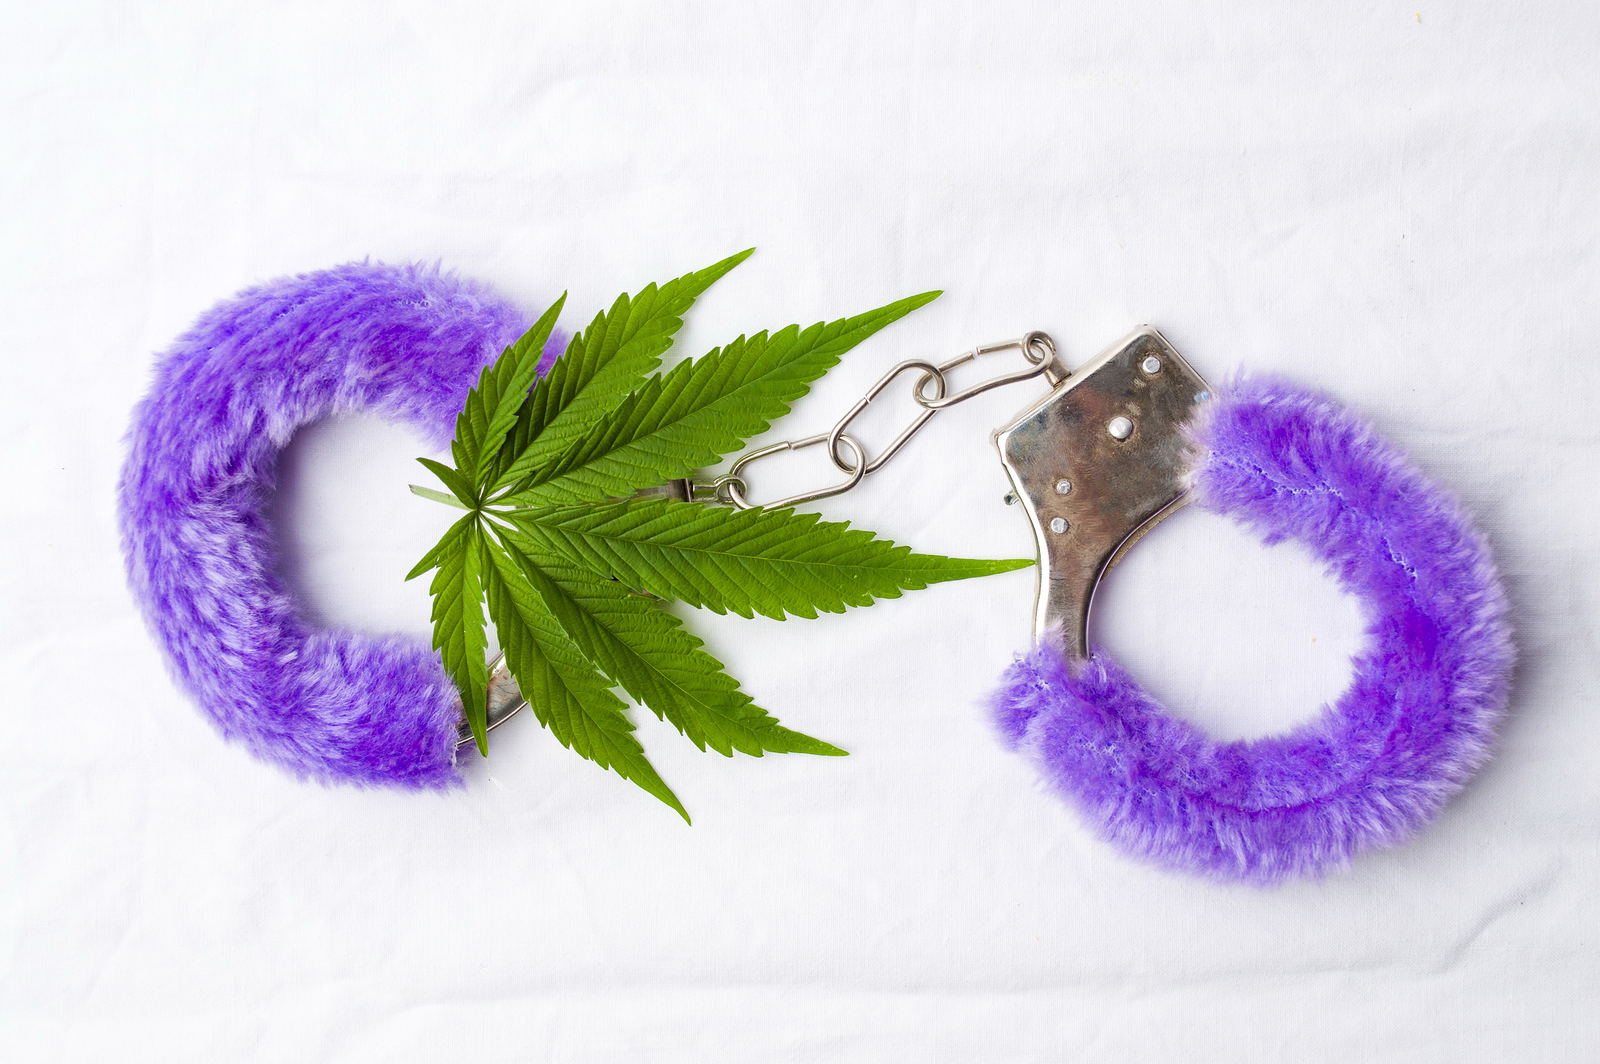 Pot Leaf Handcuffs.jpg